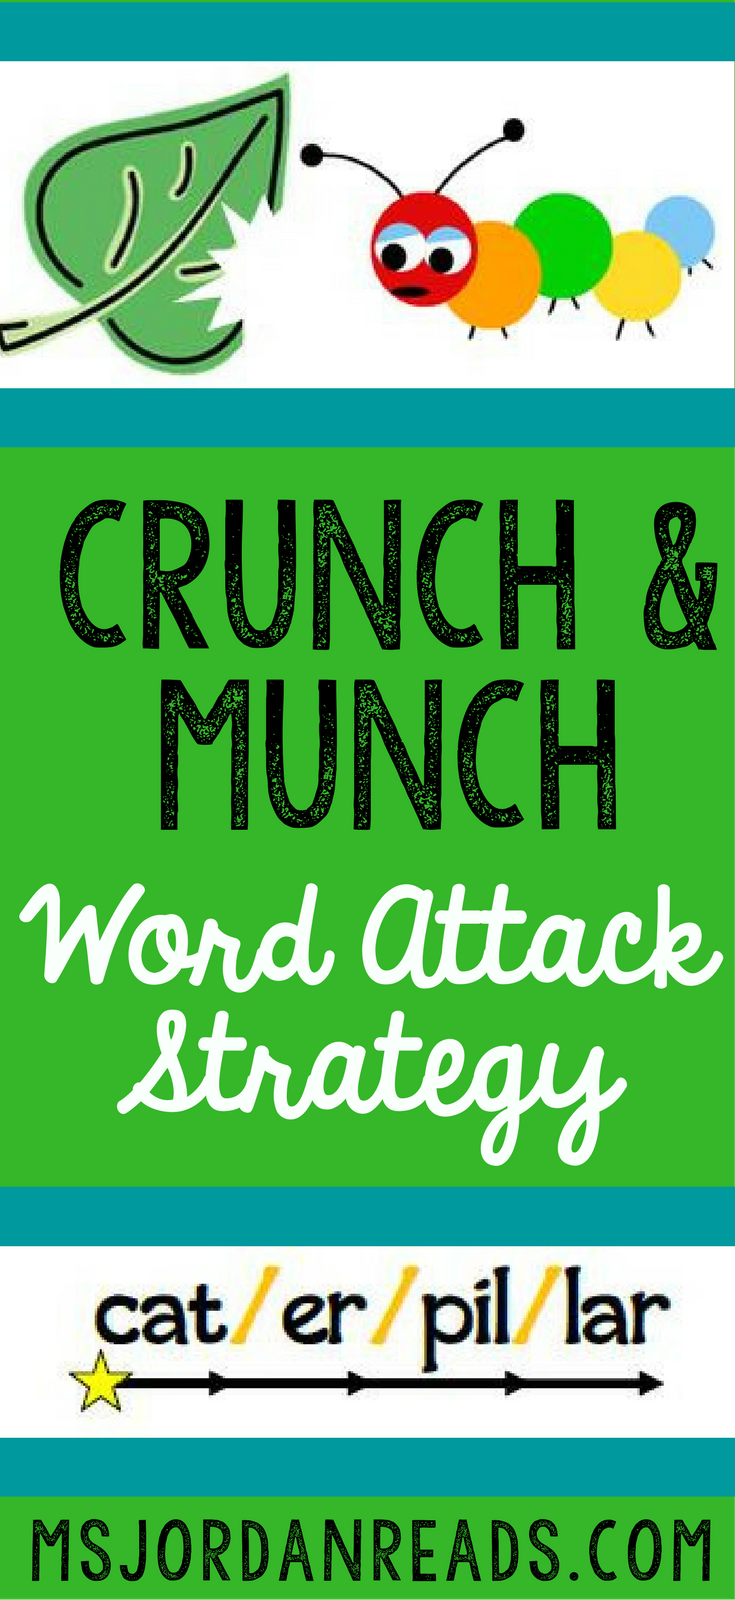 Crunch and Munch Words! | A word attack strategy for breaking apart words and decoding multi-syllable words. Includes reading strategy lesson ideas, graphic organizer, and free printables for the Crunch and Munch strategy.